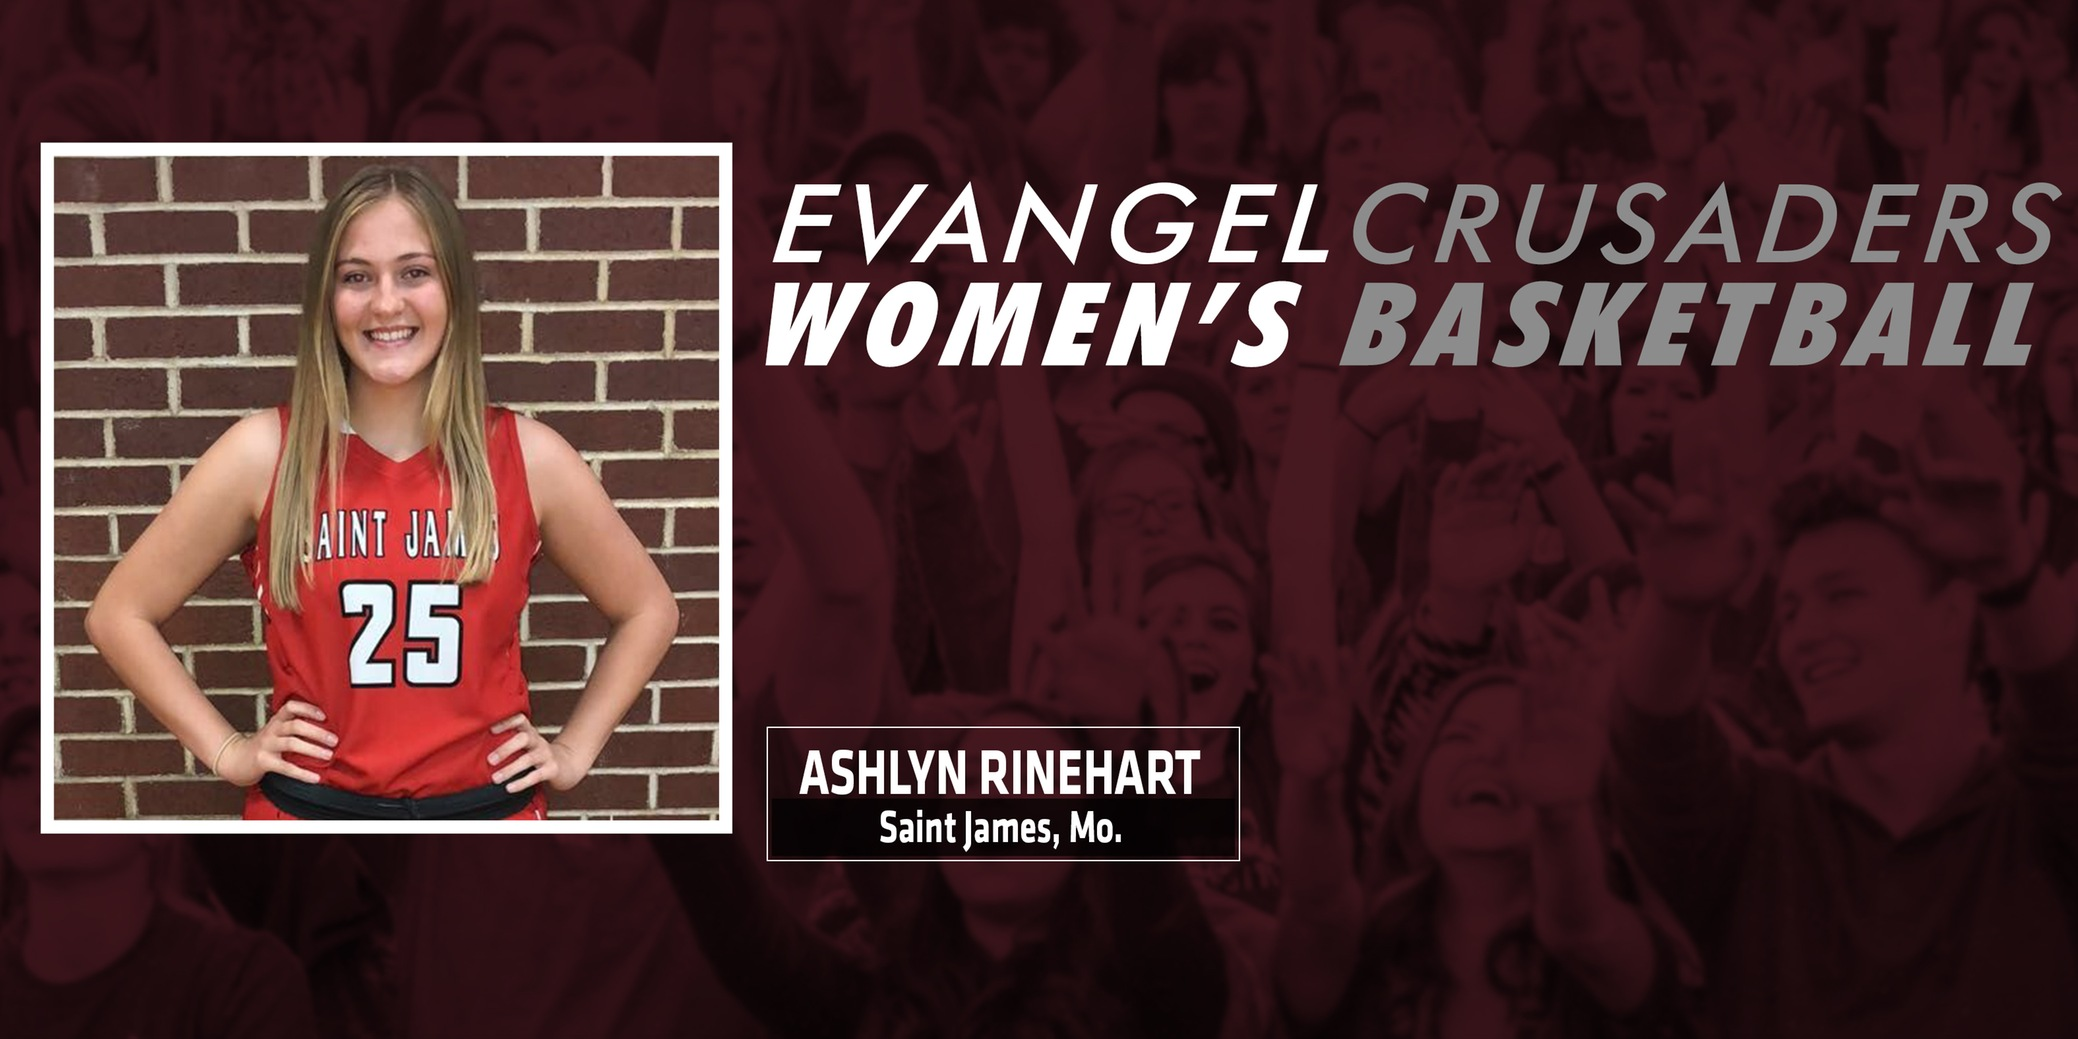 Evangel Women's Basketball Welcomes Ashlyn Rinehart for 2019-20